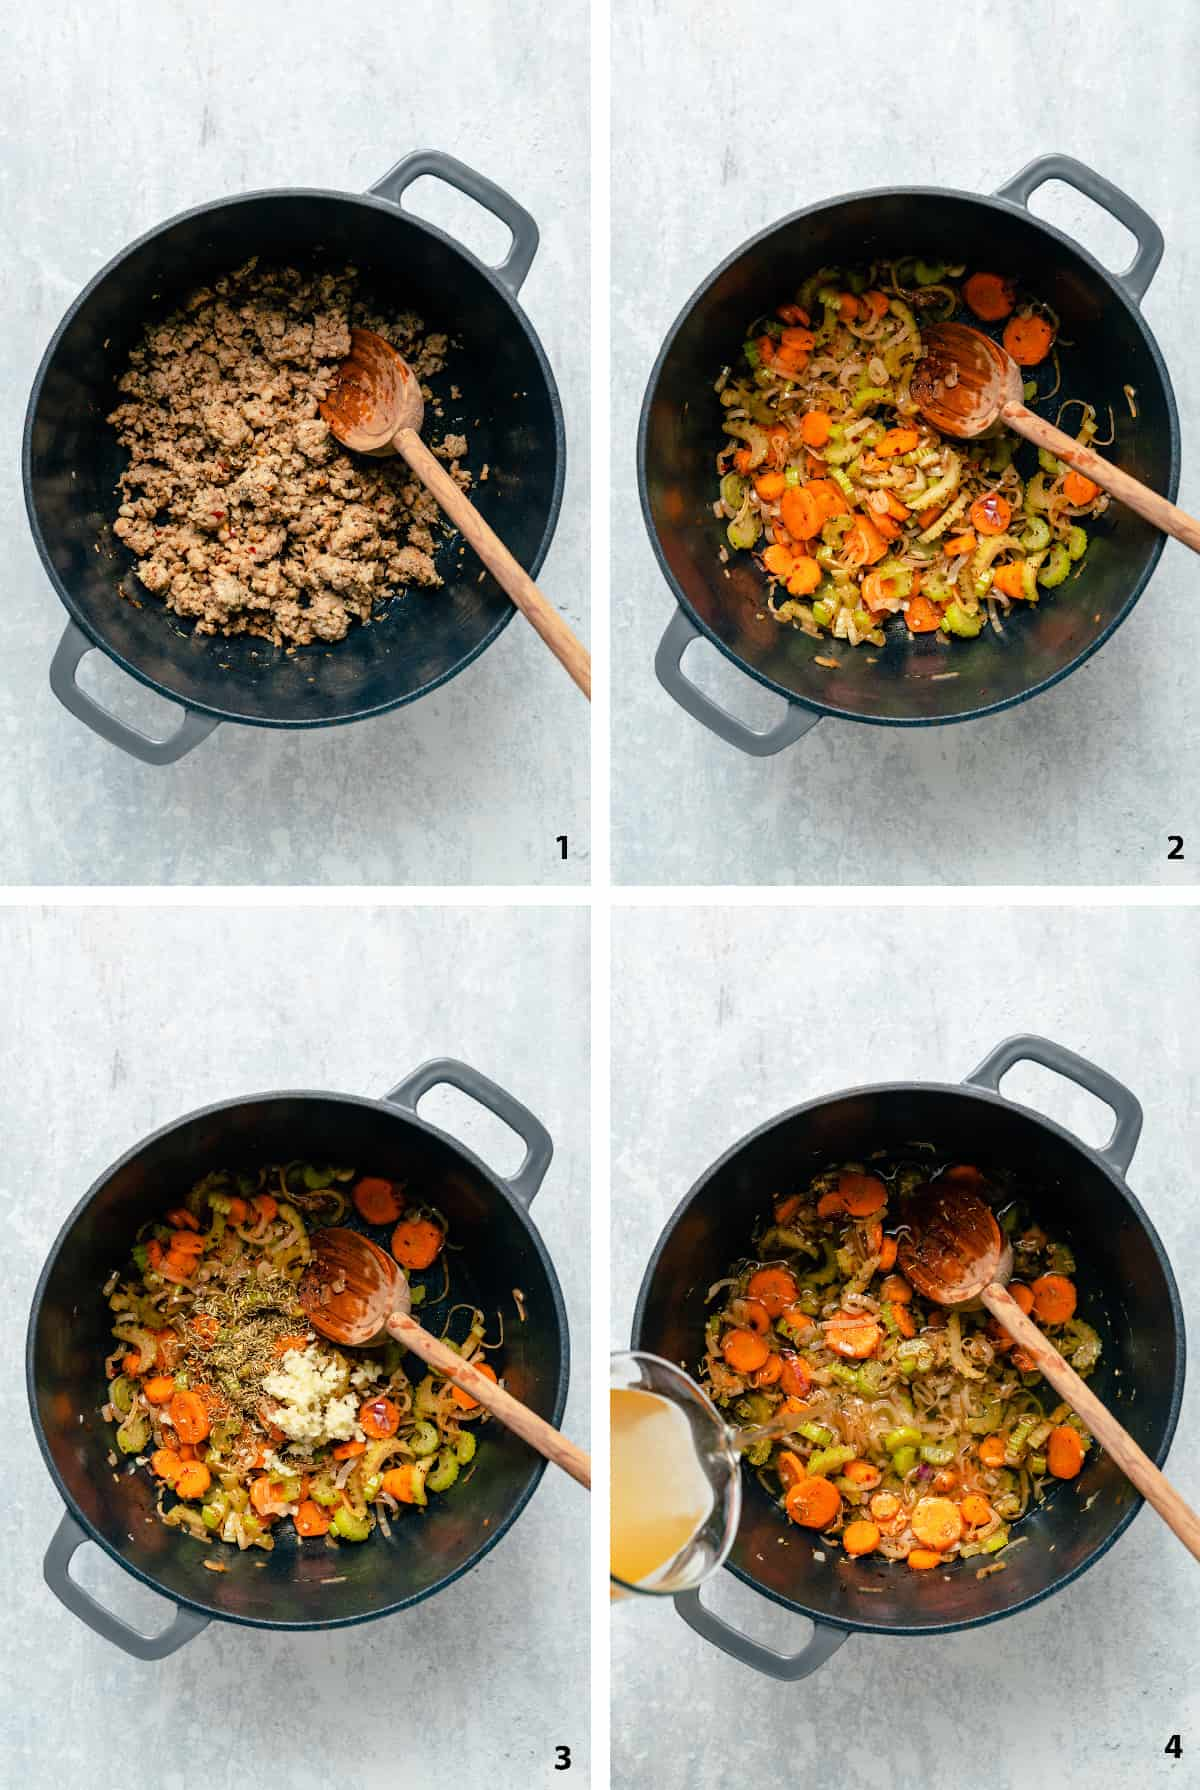 Process steps for browning sausage, sauteing vegetables, adding spices and adding stock.